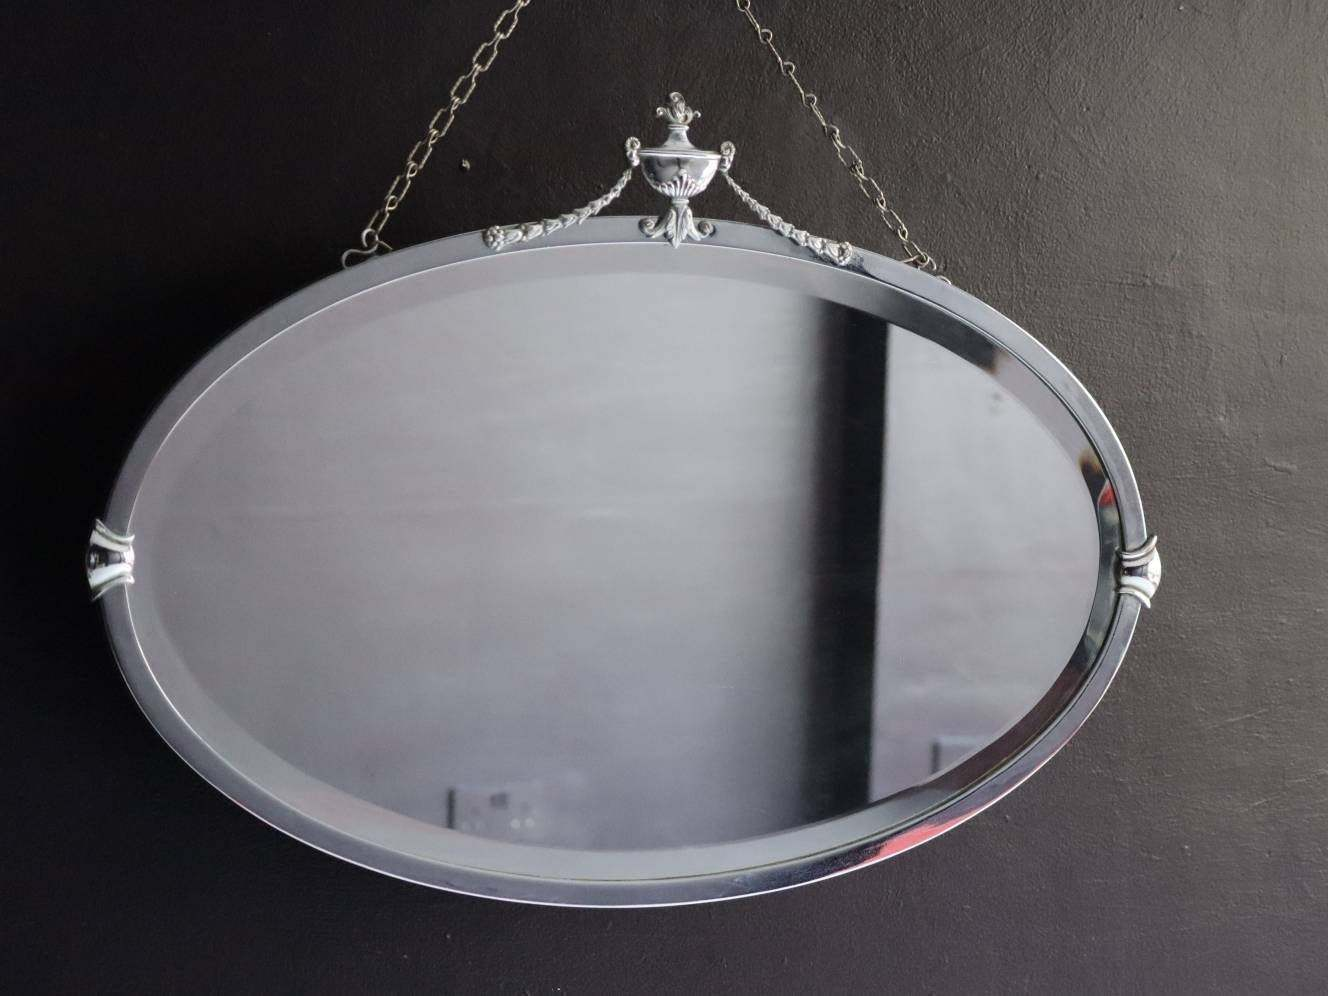 Chrome Art Deco Antique Large Wall Mirror Decorative Silver Framed With Ornate Silver Top Crest Side Crests Original Chain Vinterior